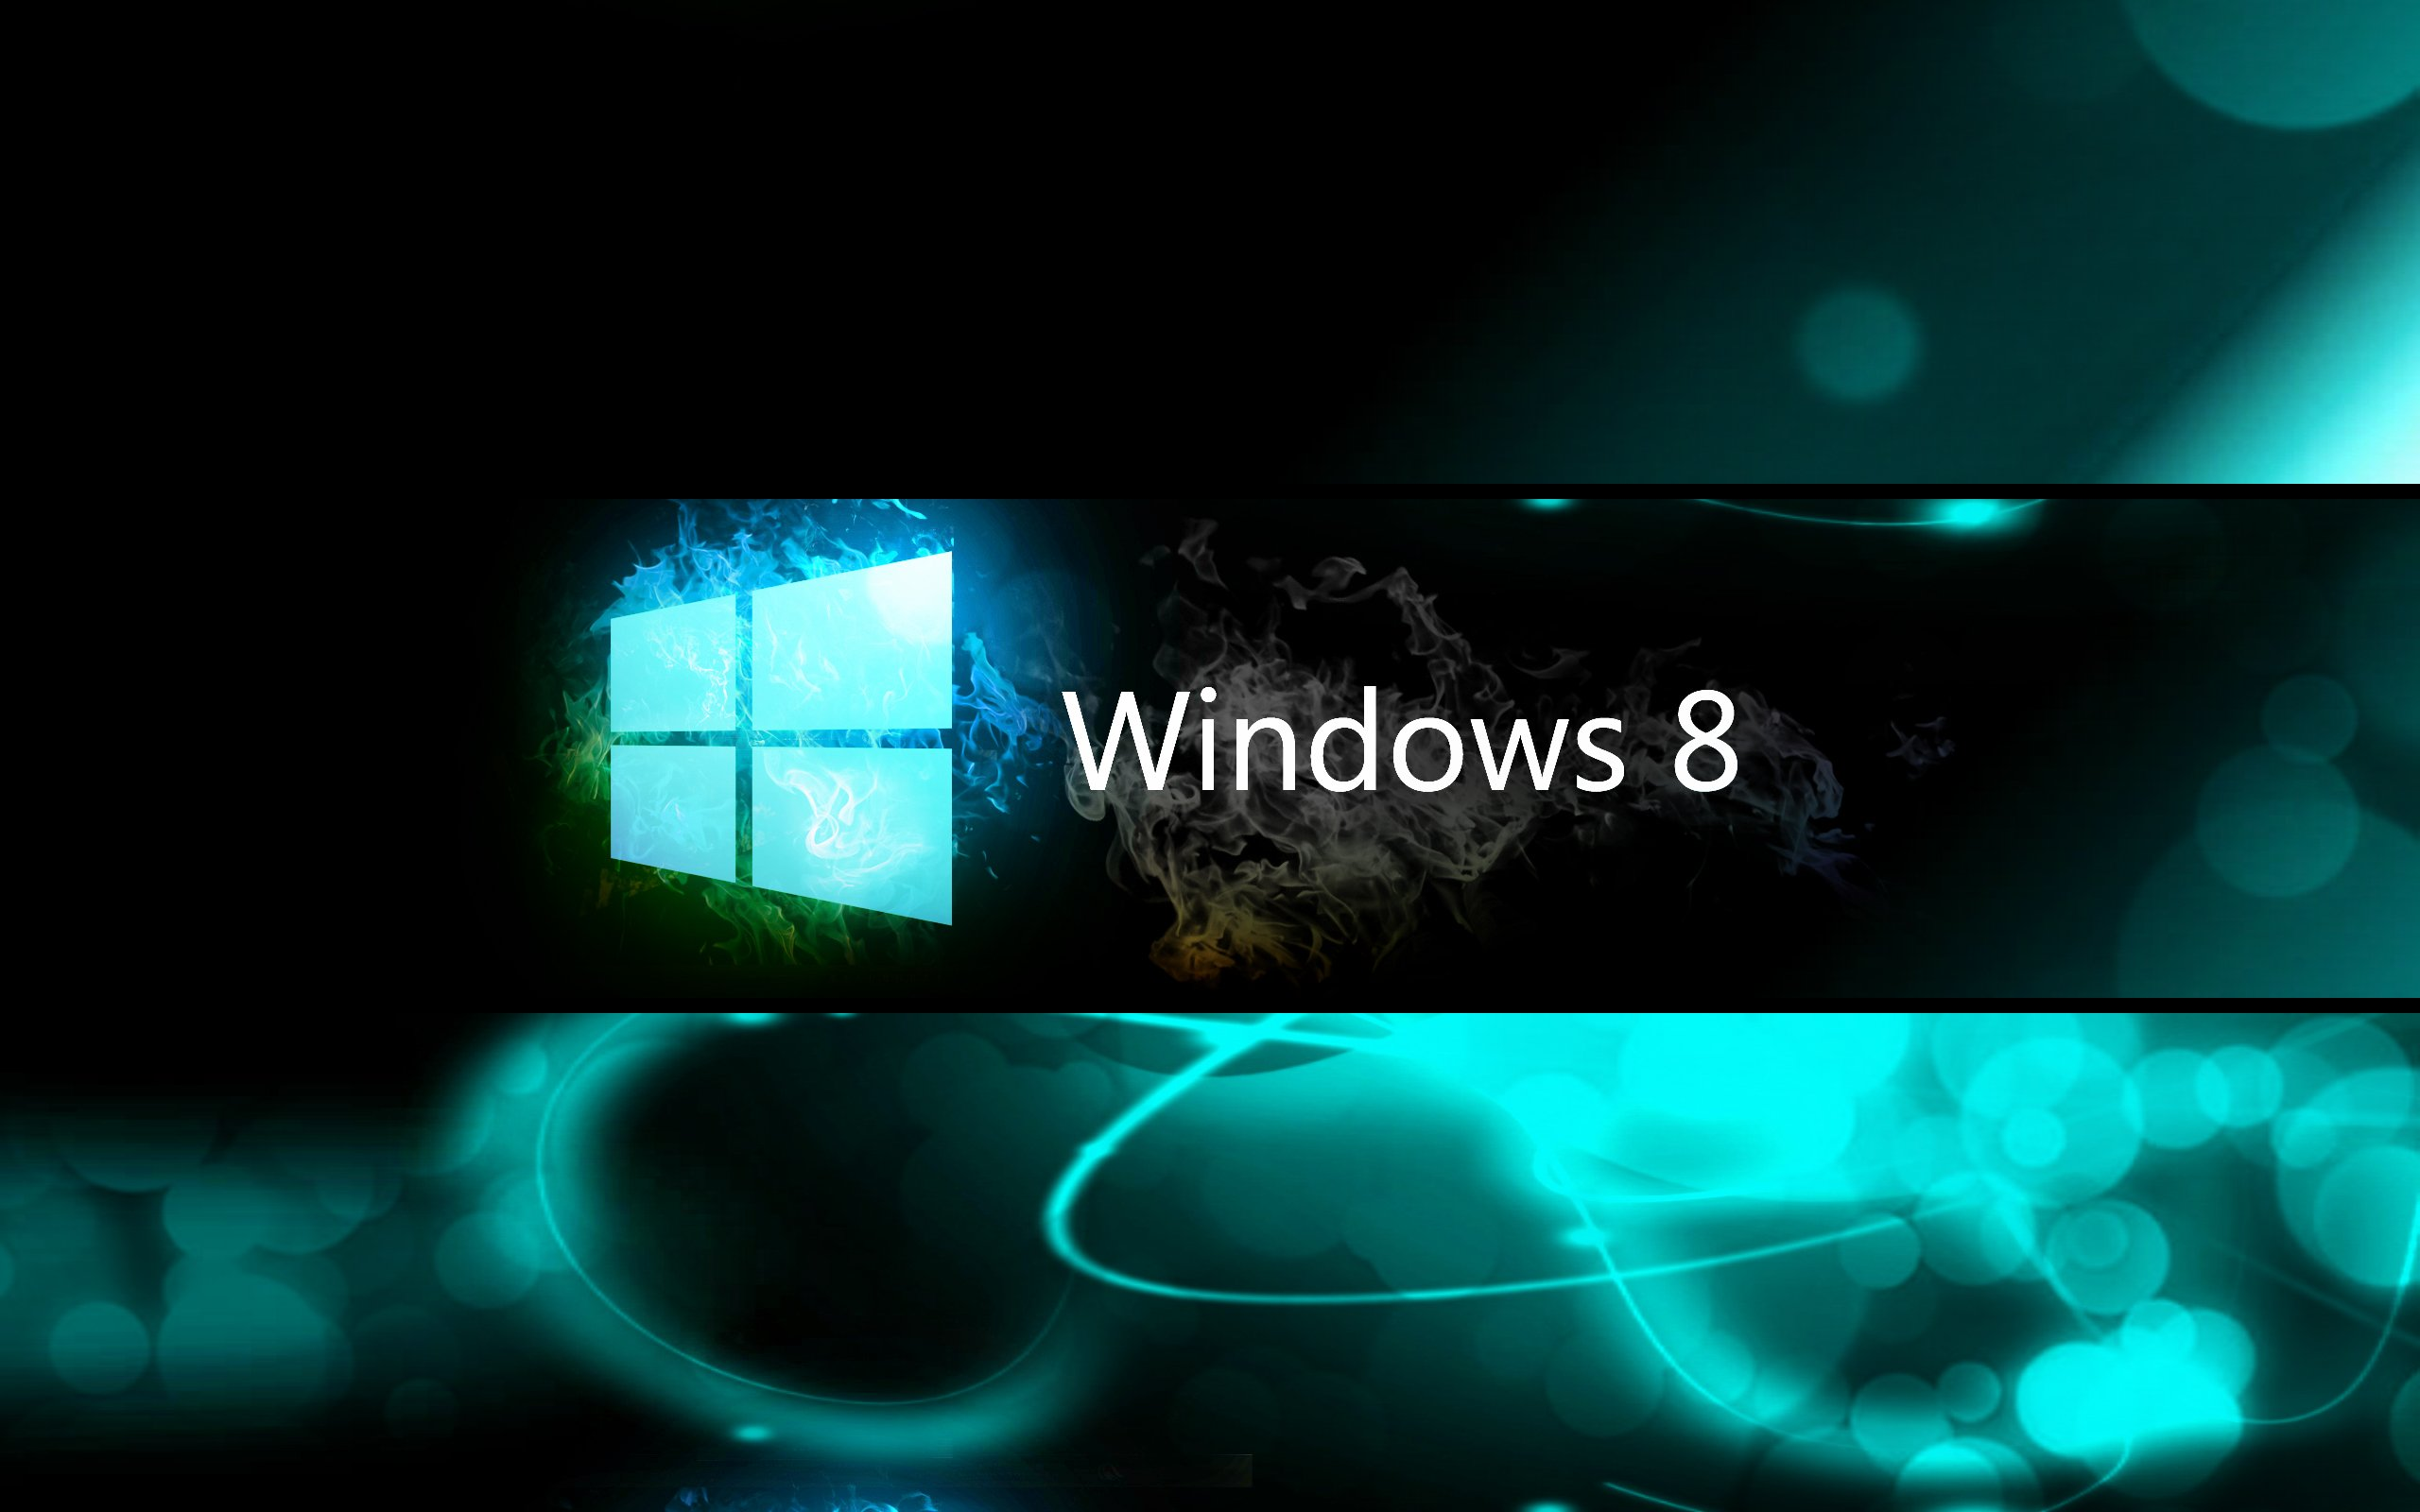 Laptop Windows 8 fond ecran hd 2560x1600